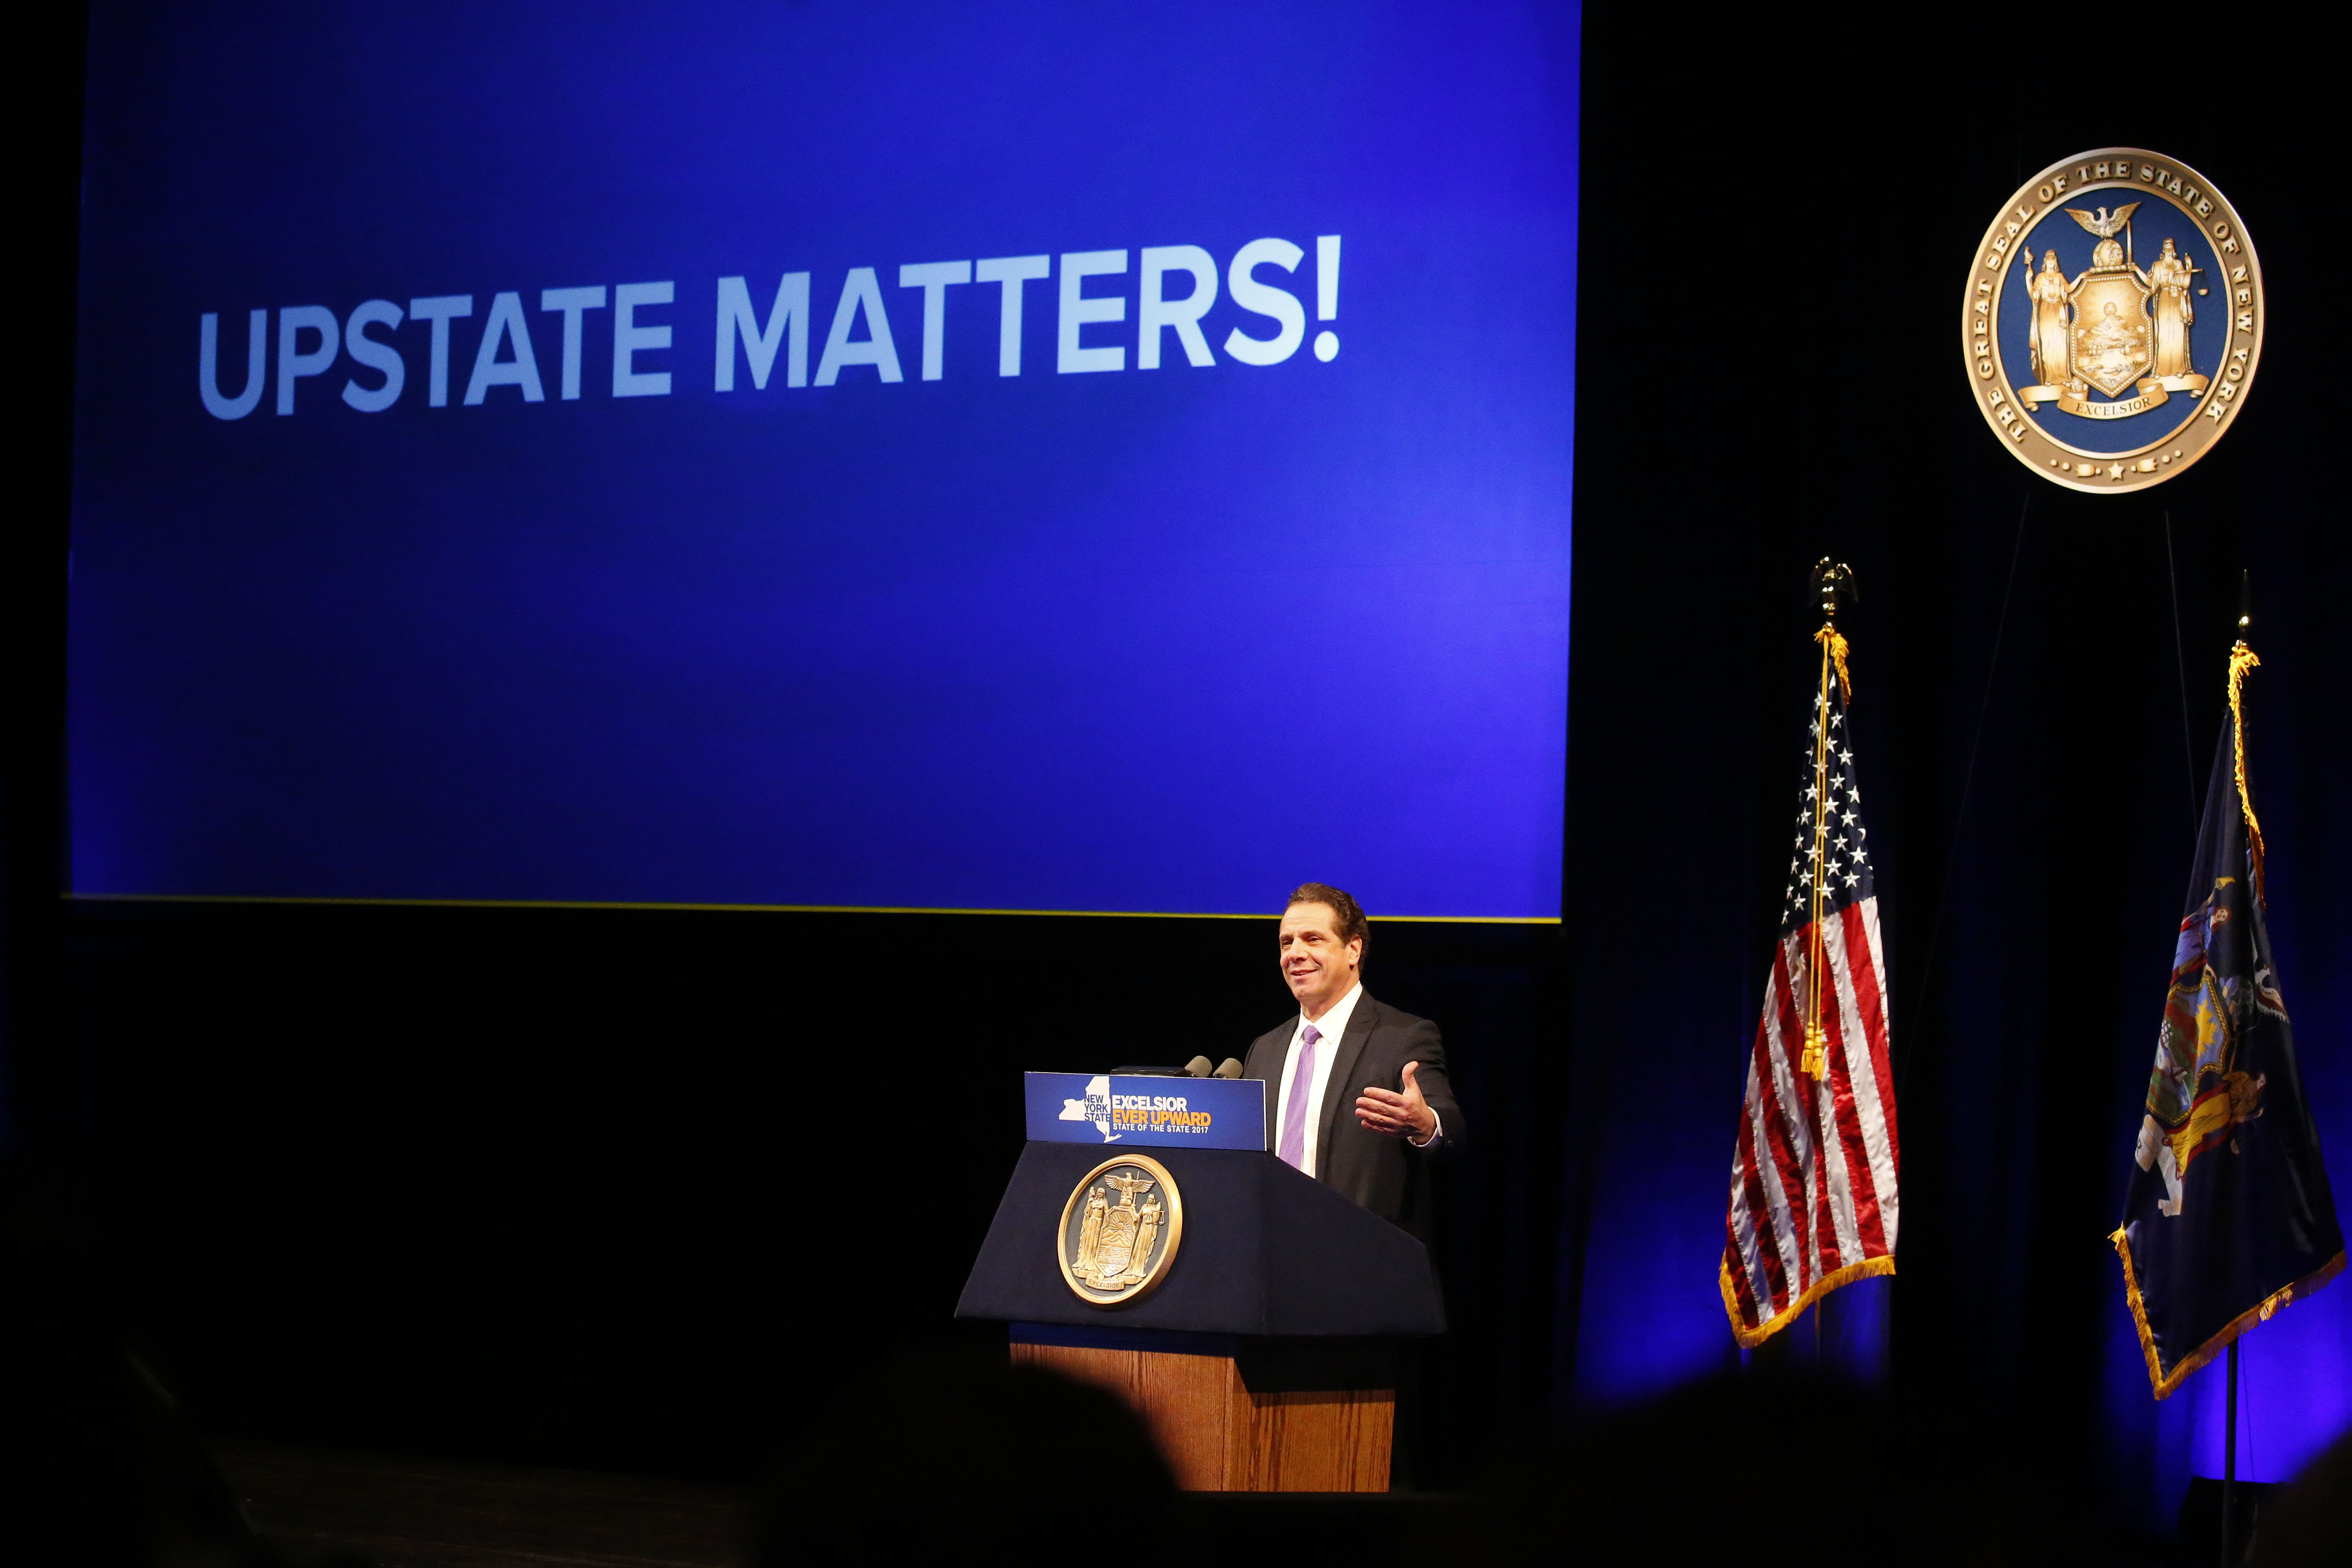 Gov. Andrew Cuomo gives his State of the State address at the University at Buffalo  Center for the Arts in Amherst Monday, January 9, 2017.  (Mark Mulville/The Buffalo News)